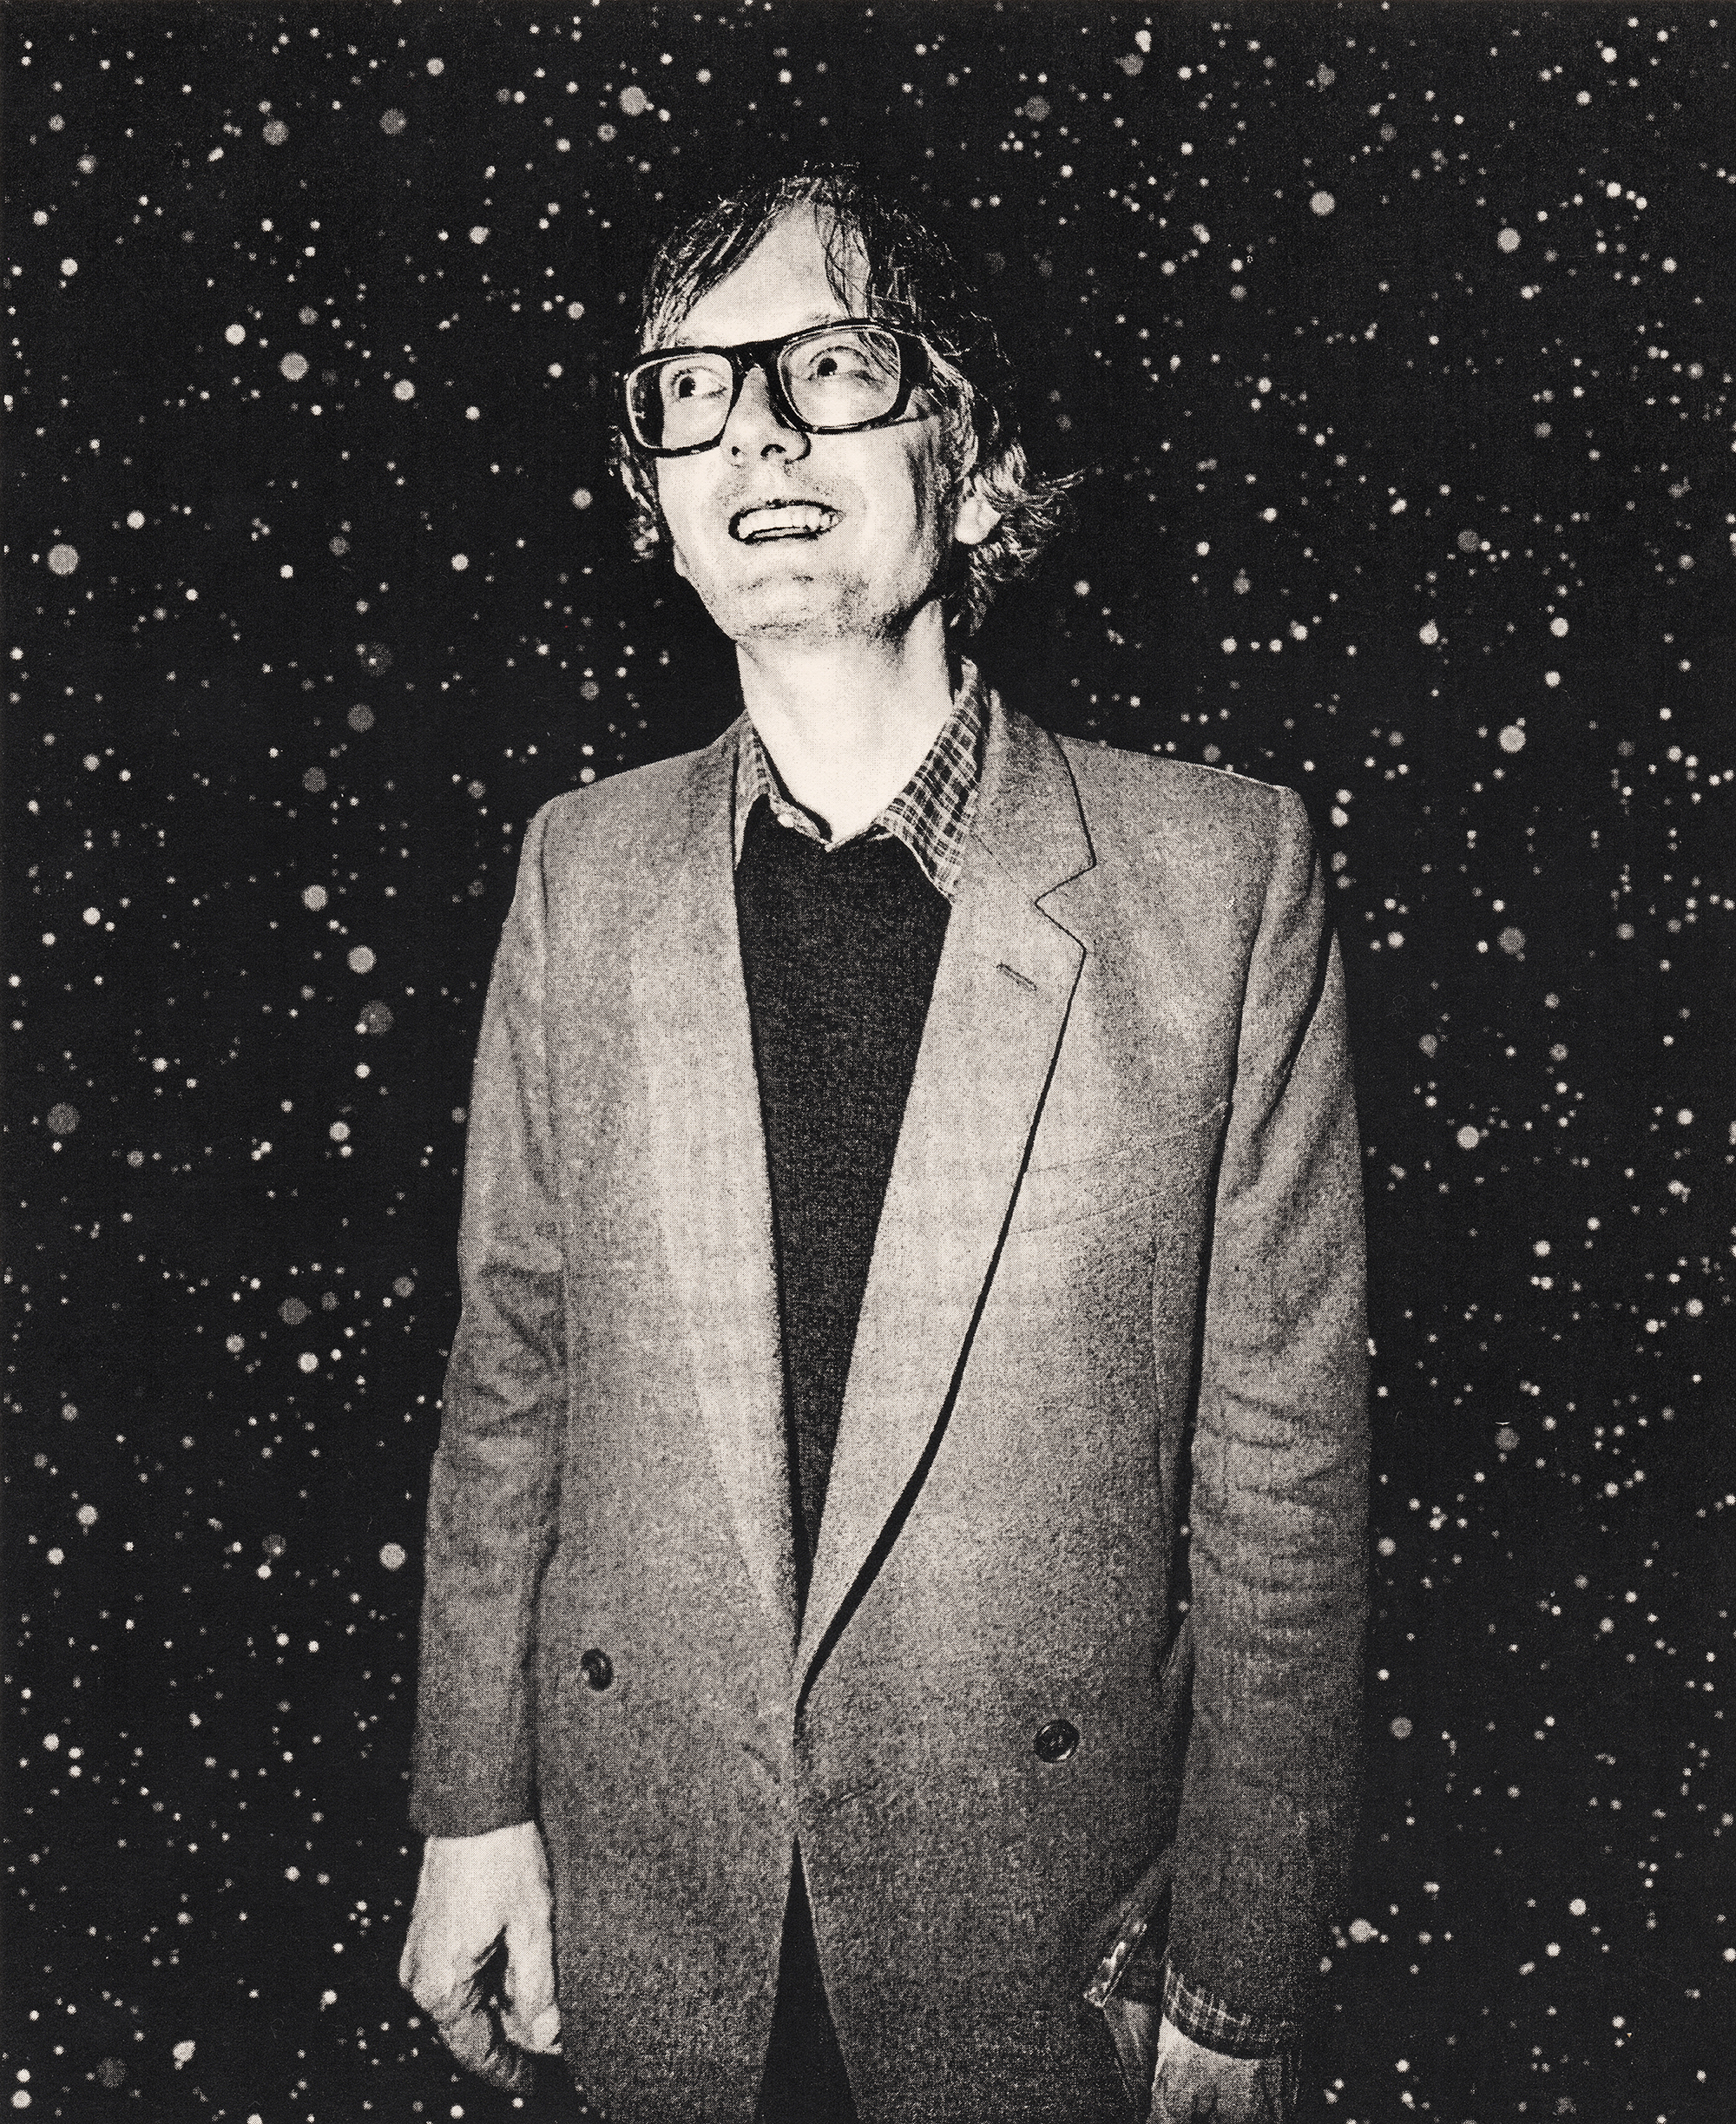 Jarvis Cocker 2.0 Scans edit sm slight smmm.jpg